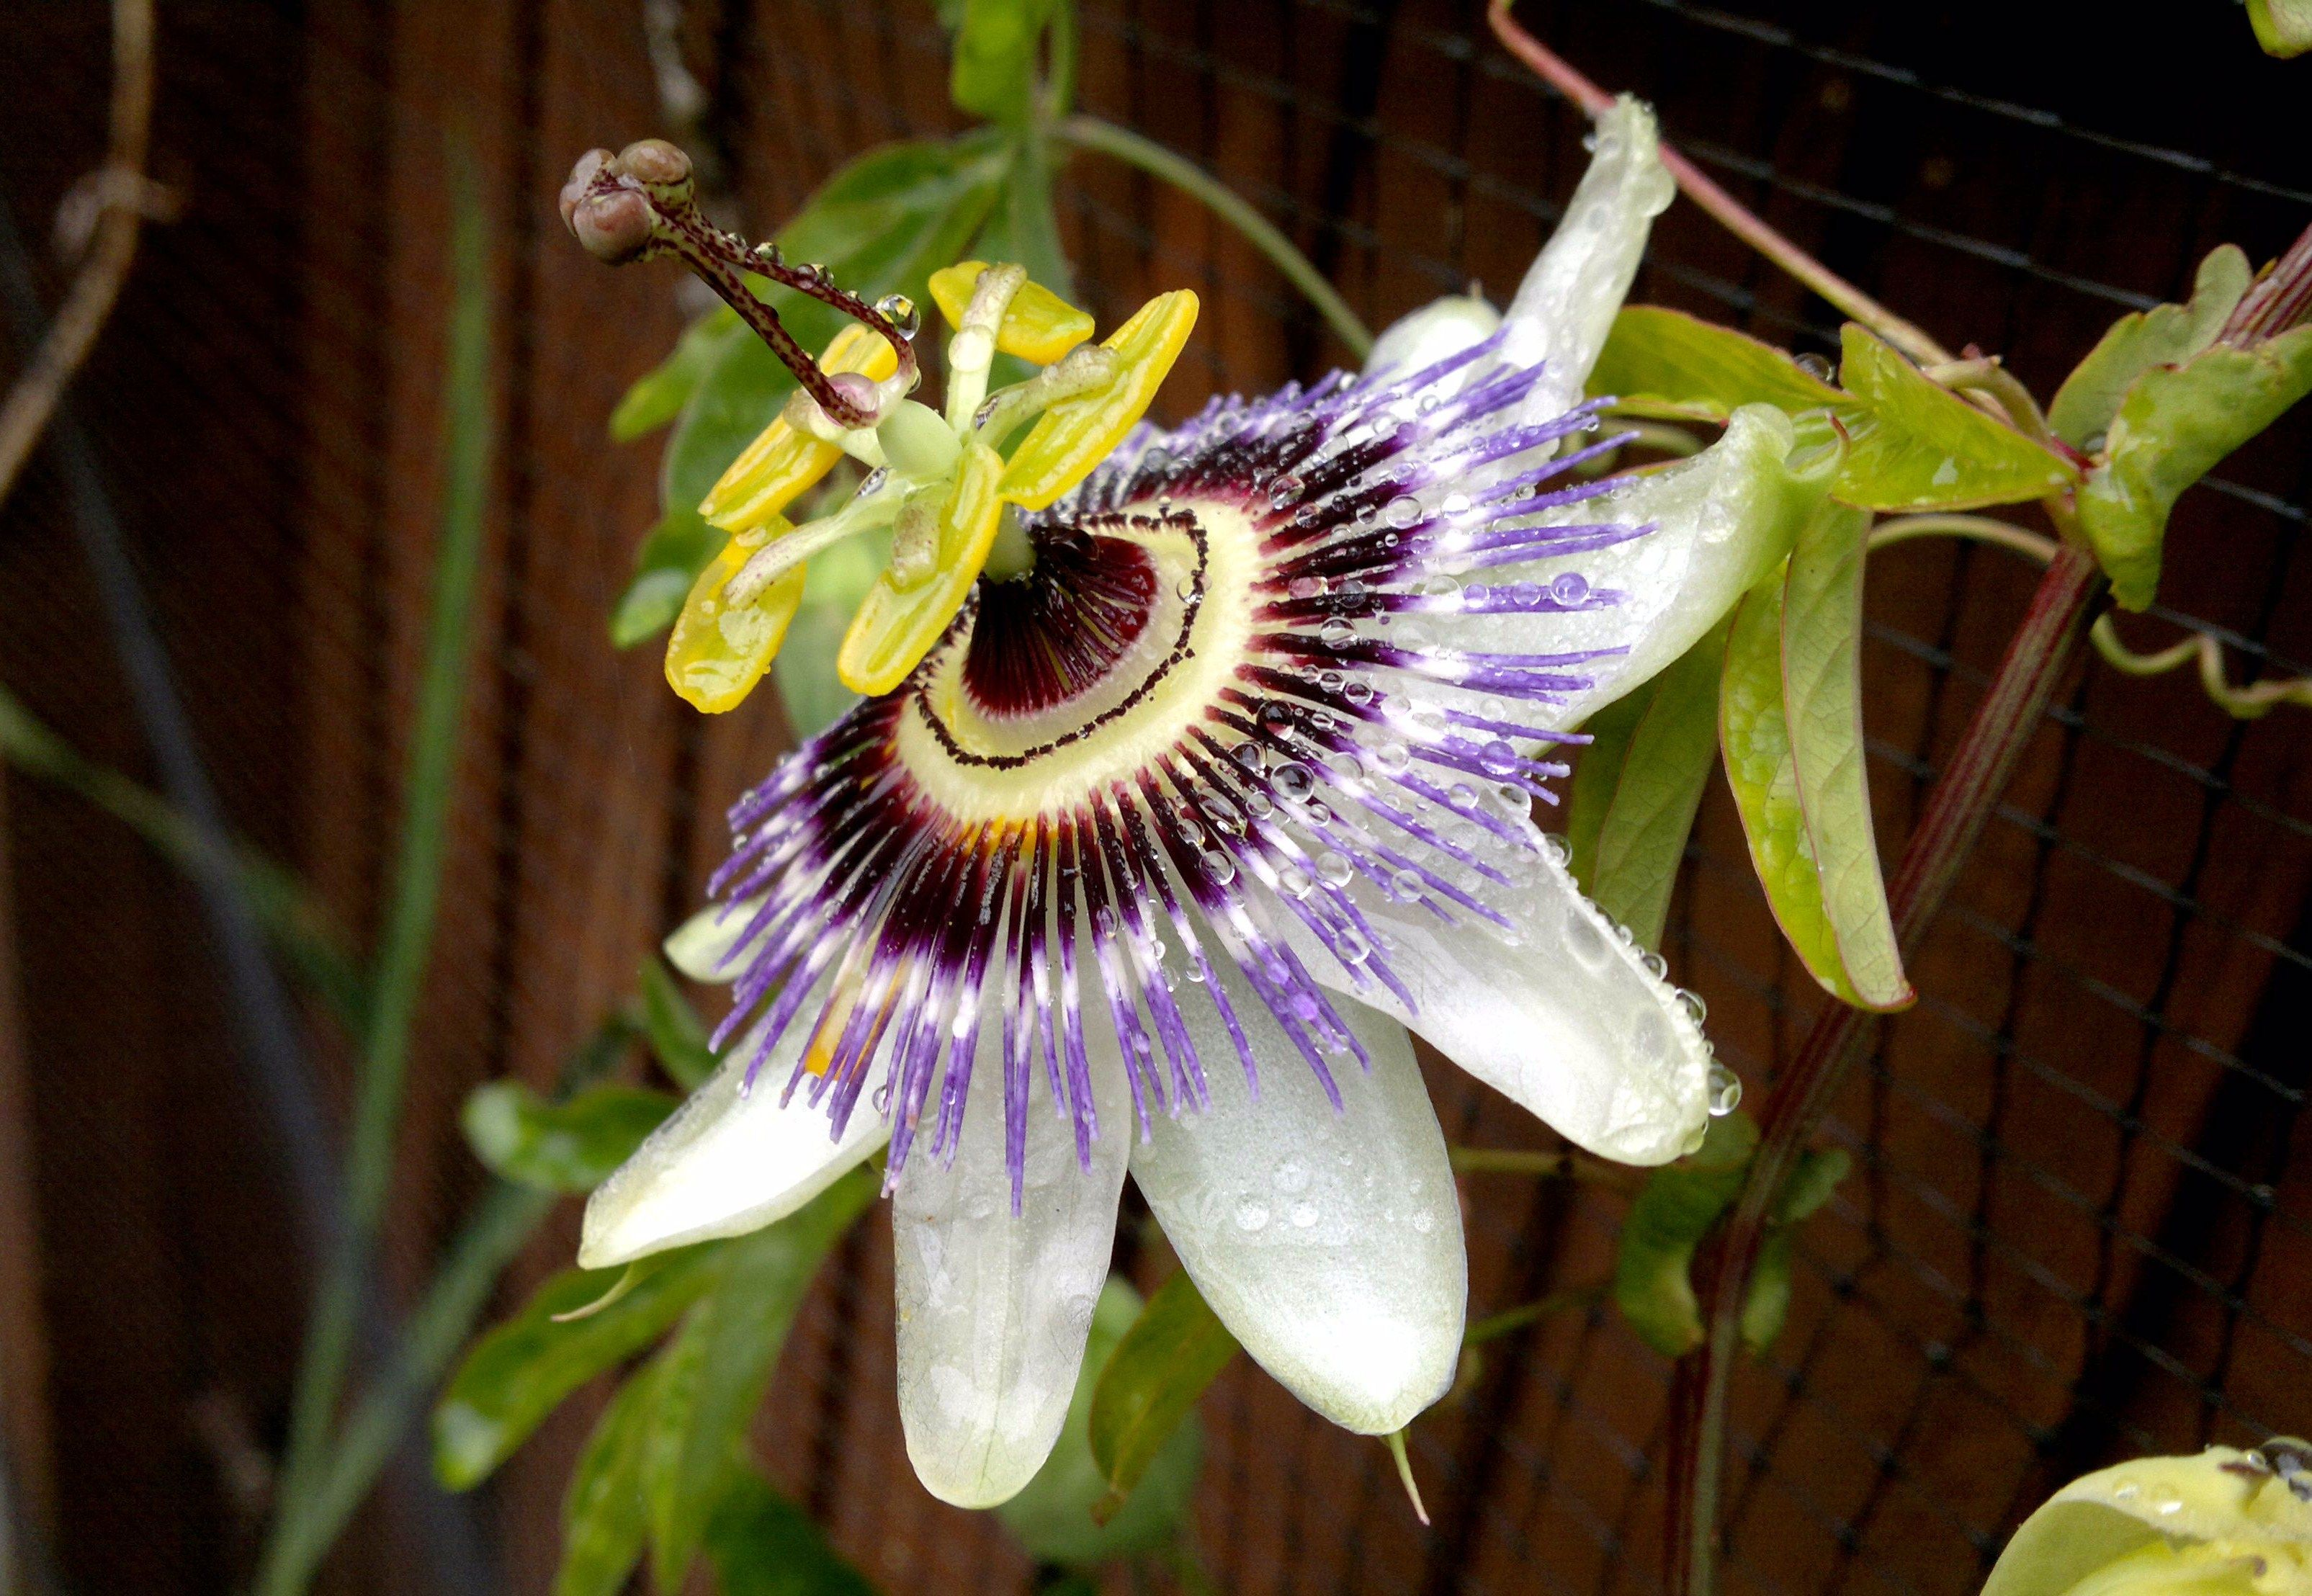 This Is A Passion Flower From My Garden An Exquisite Flower Did You Know They Bloom At Midnight Passion Flower Garden Flowers